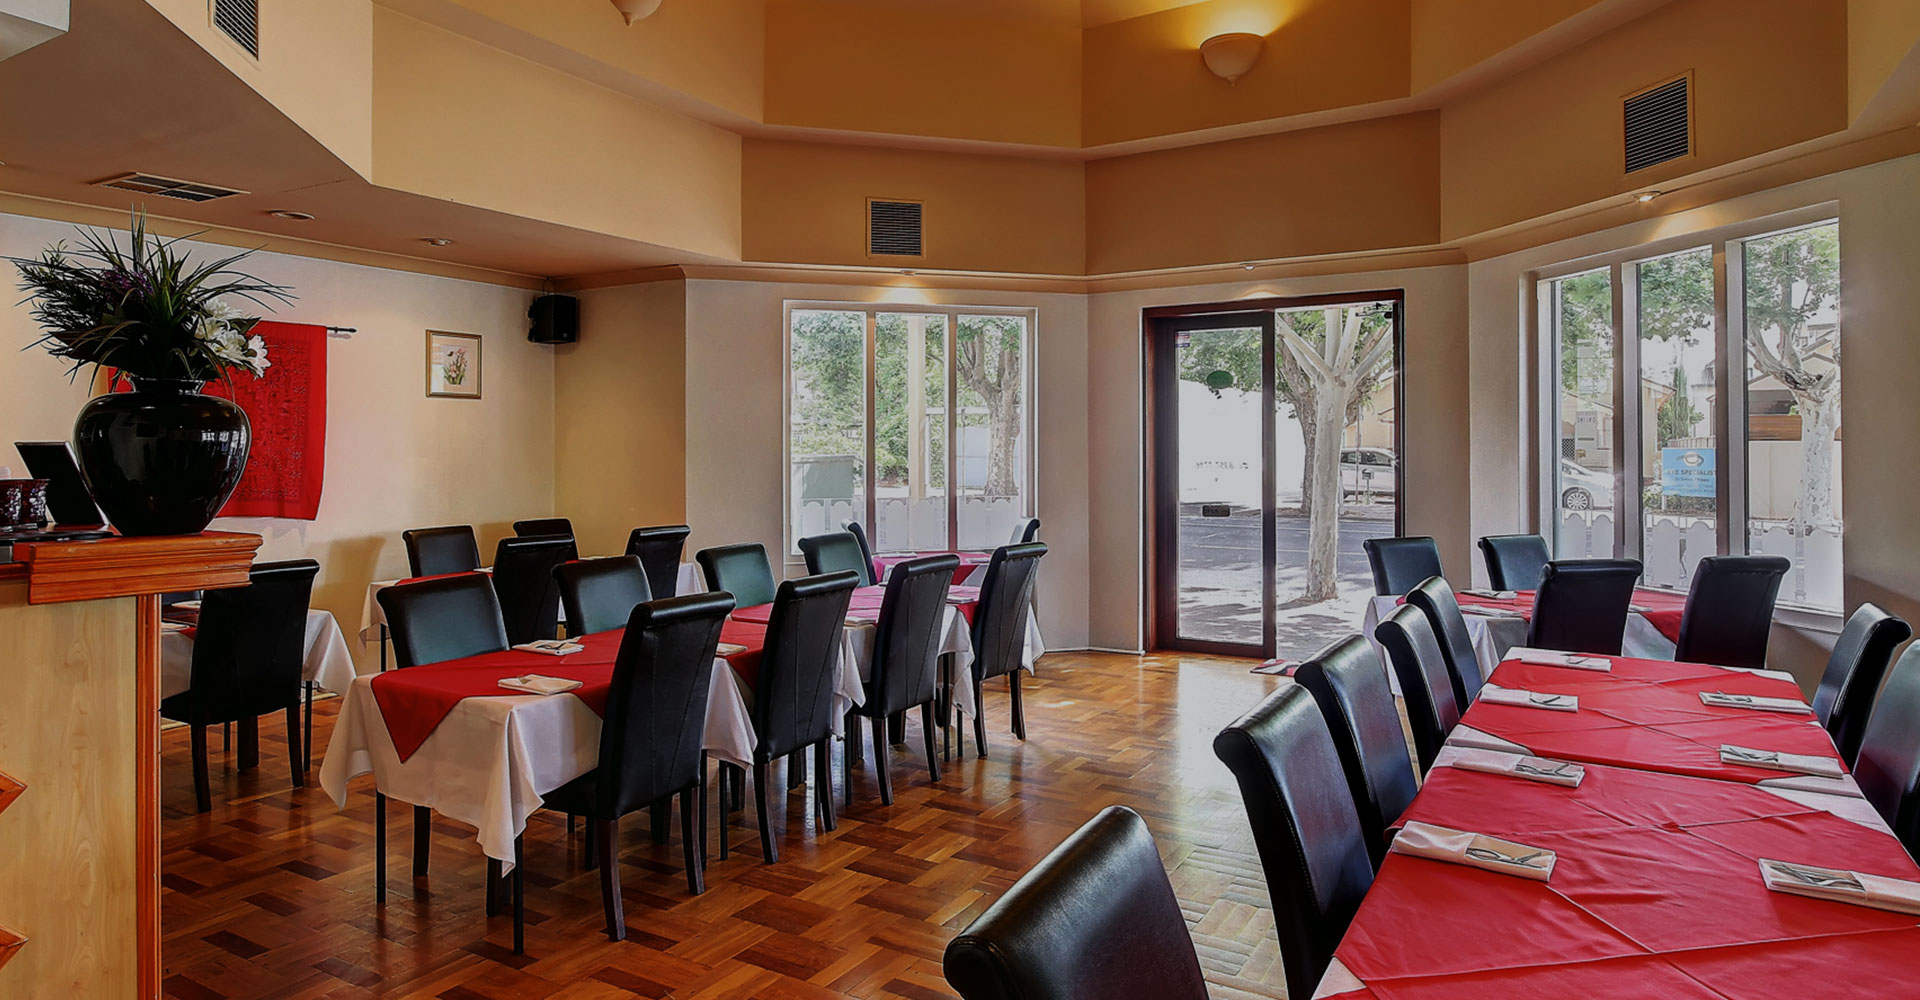 Best Indian restaurant Adelaide